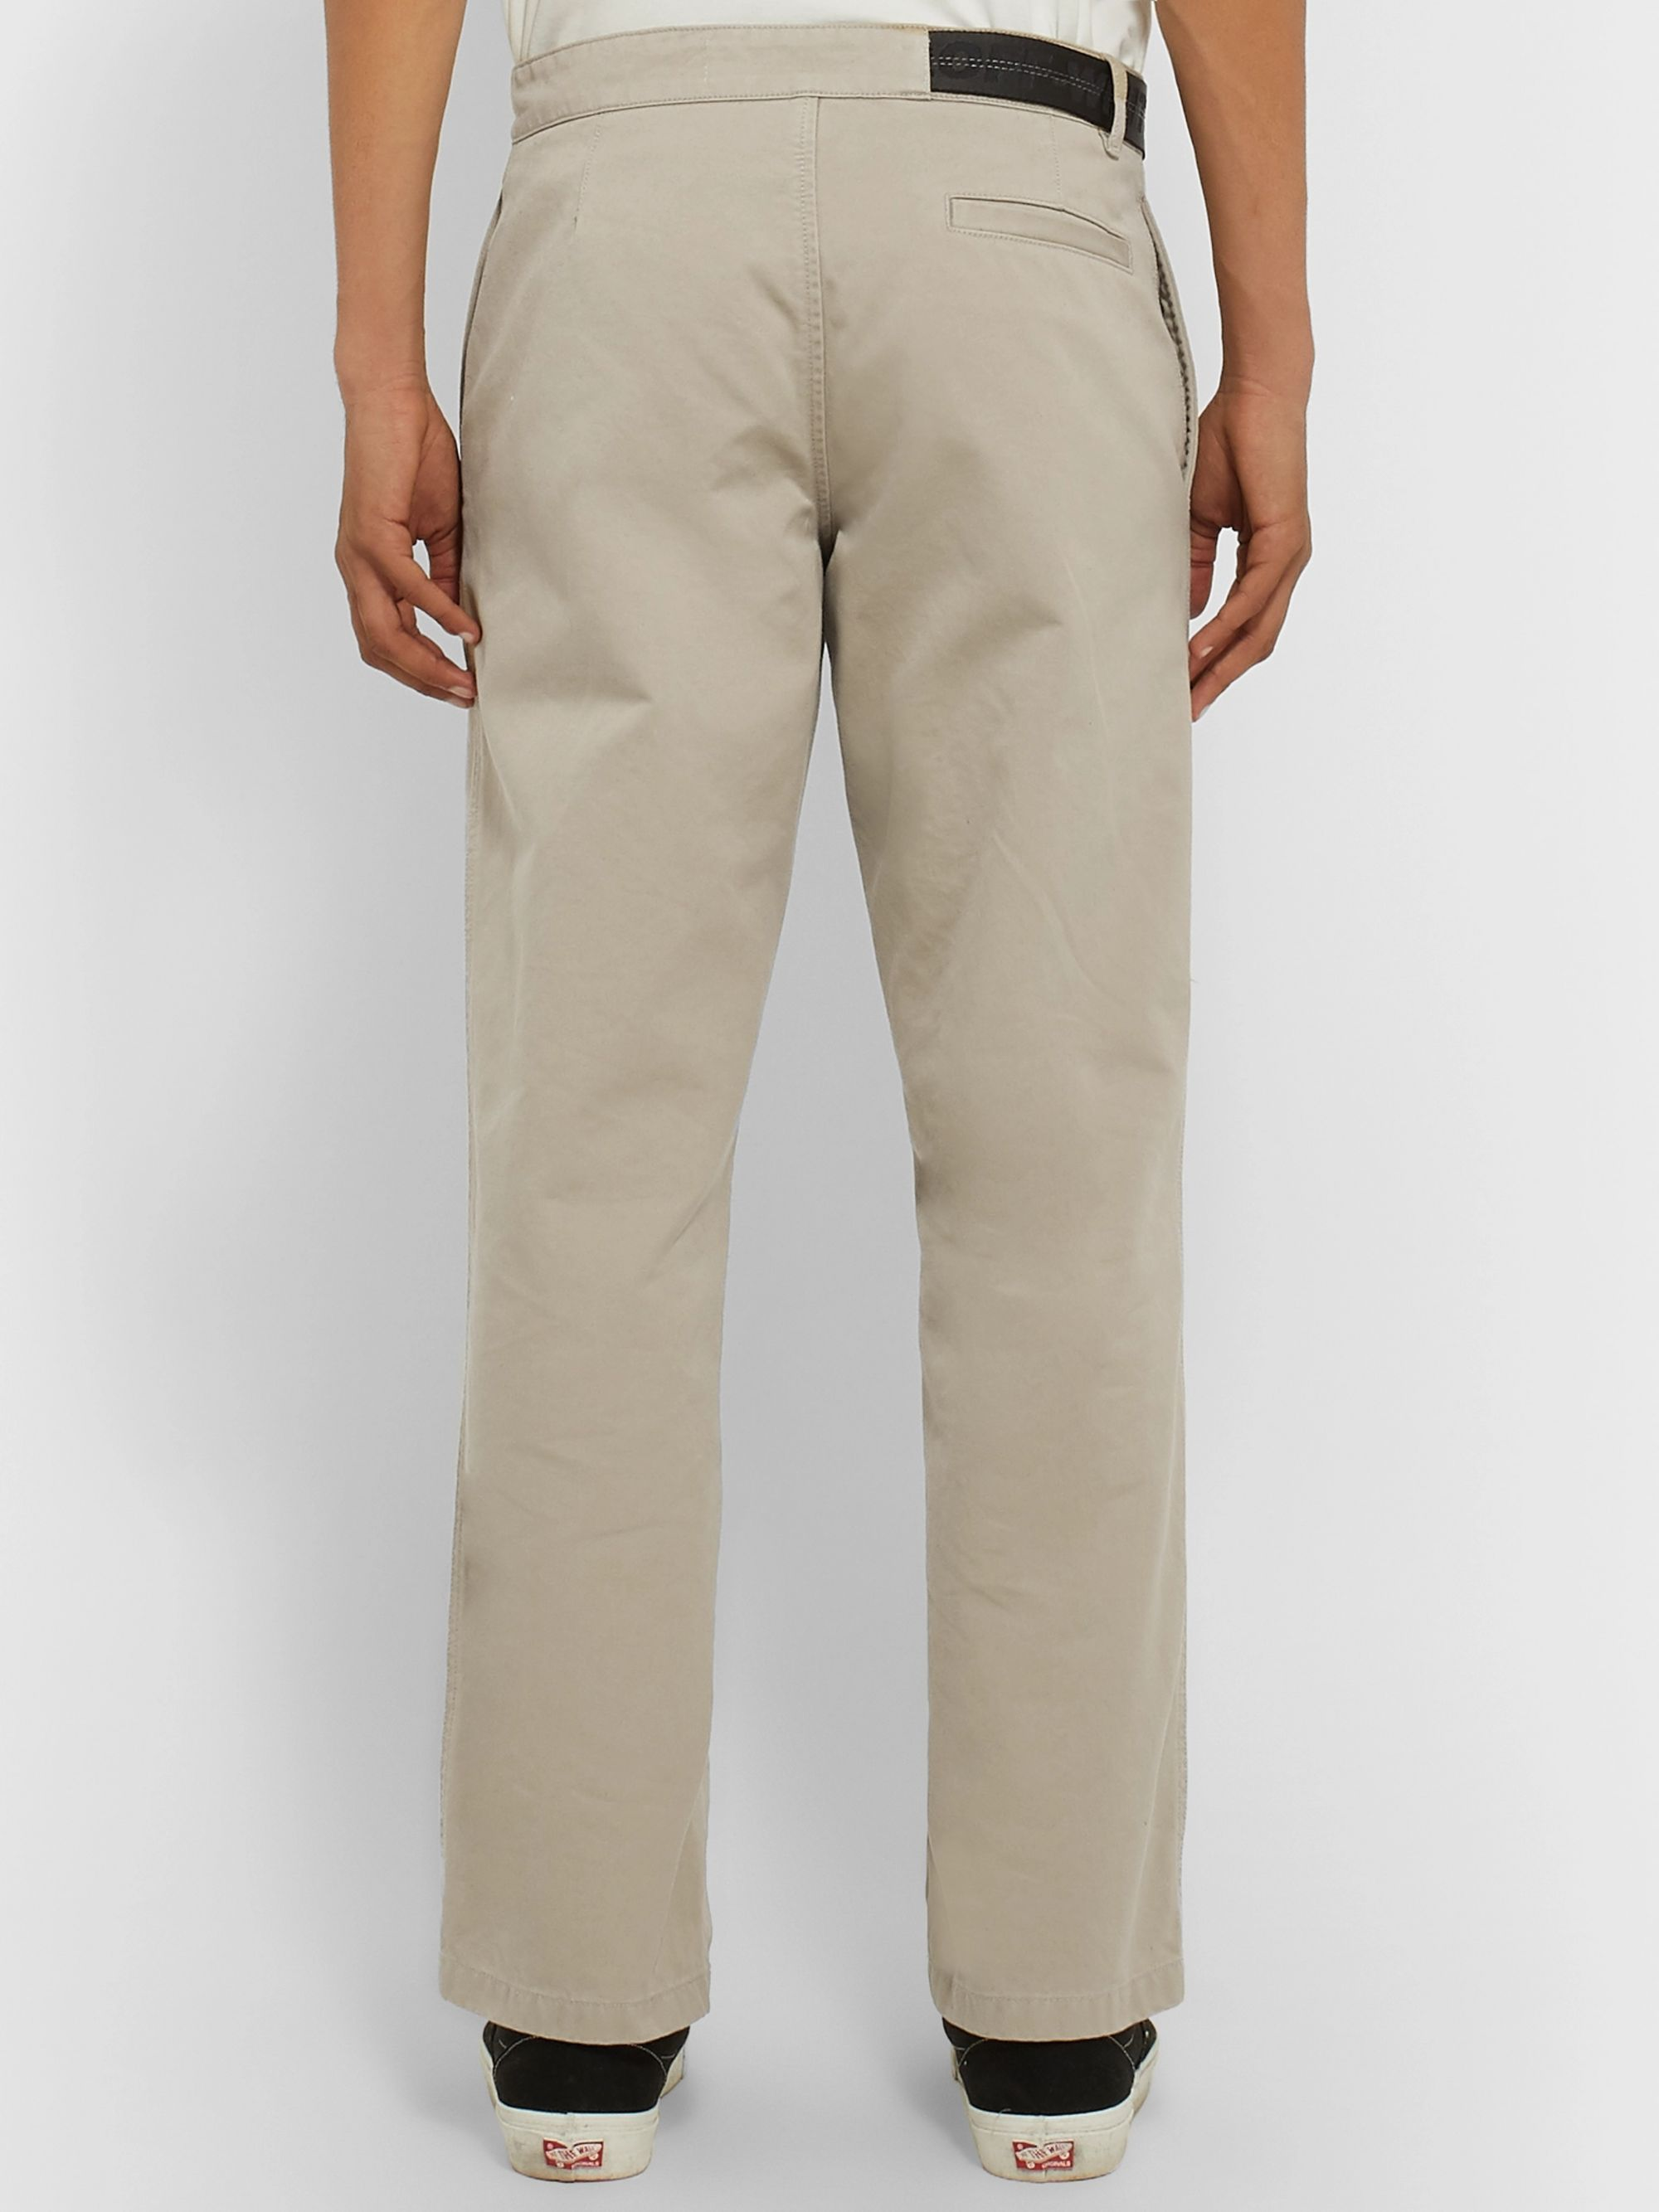 Off-White Belted Logo-Trimmed Cotton-Twill Chinos